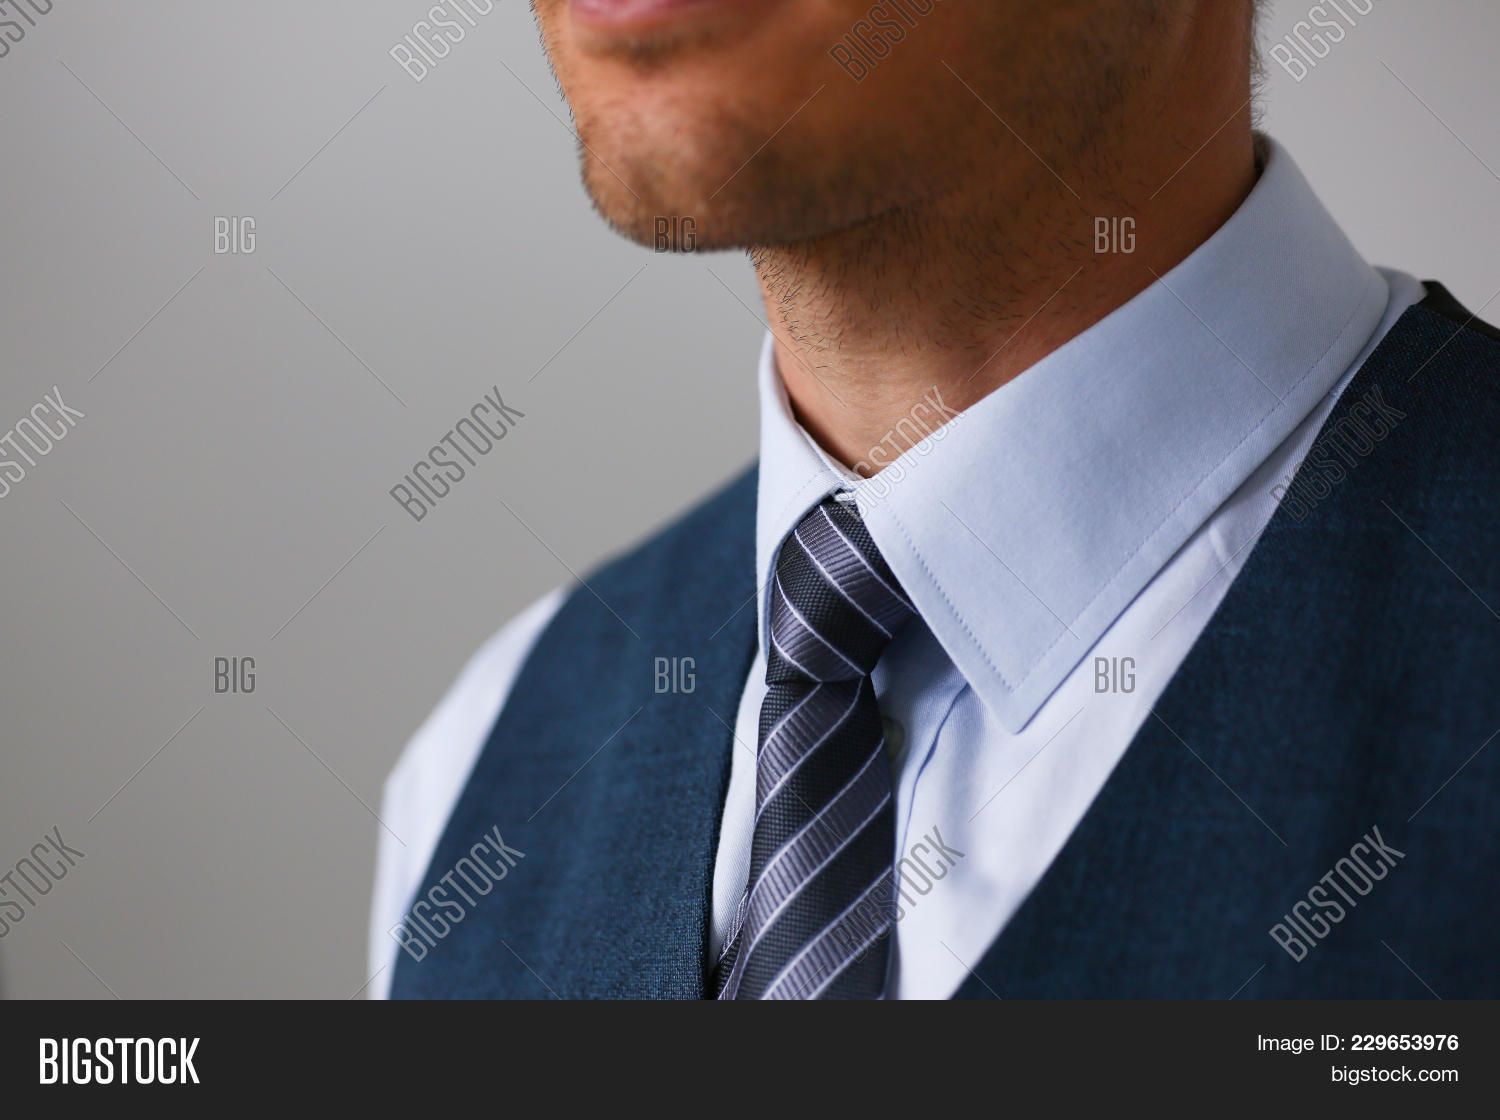 Tie on shirt powerpoint template powerpoint template tie on shirt p ccuart Image collections